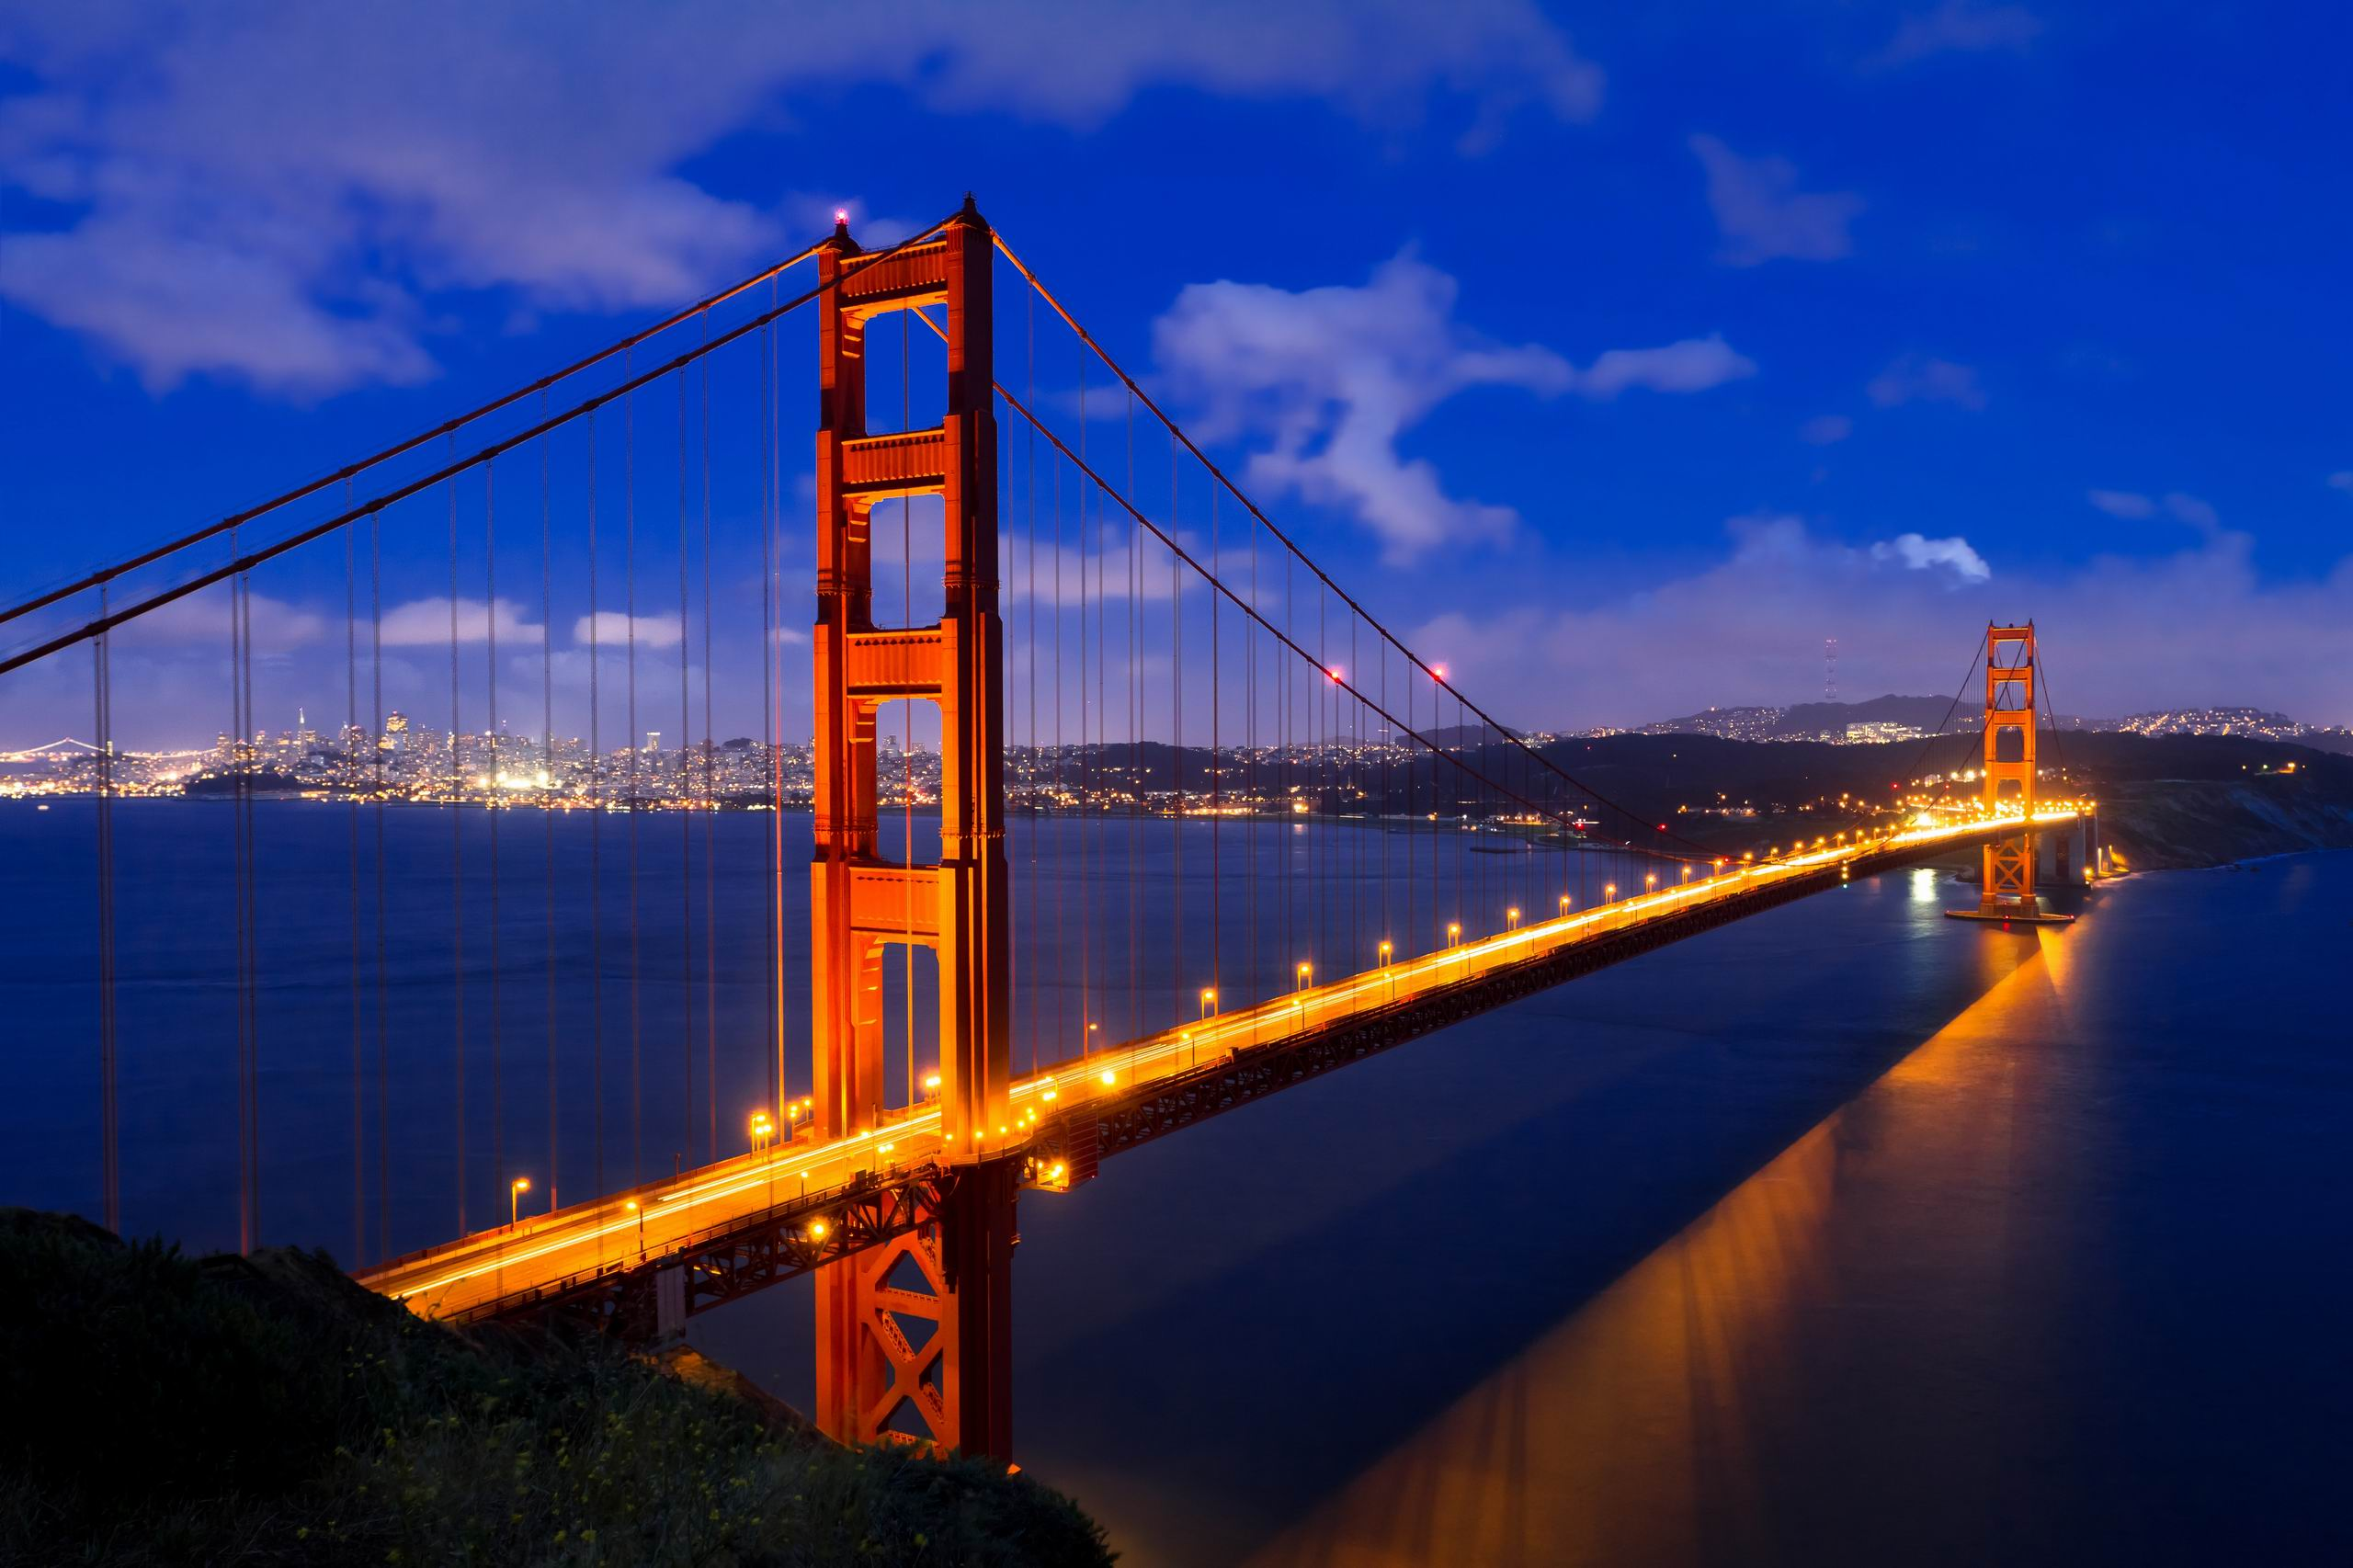 Golden Gate Bridge Night Wallpaper High Definition - Golden Gate Bridge PNG HD